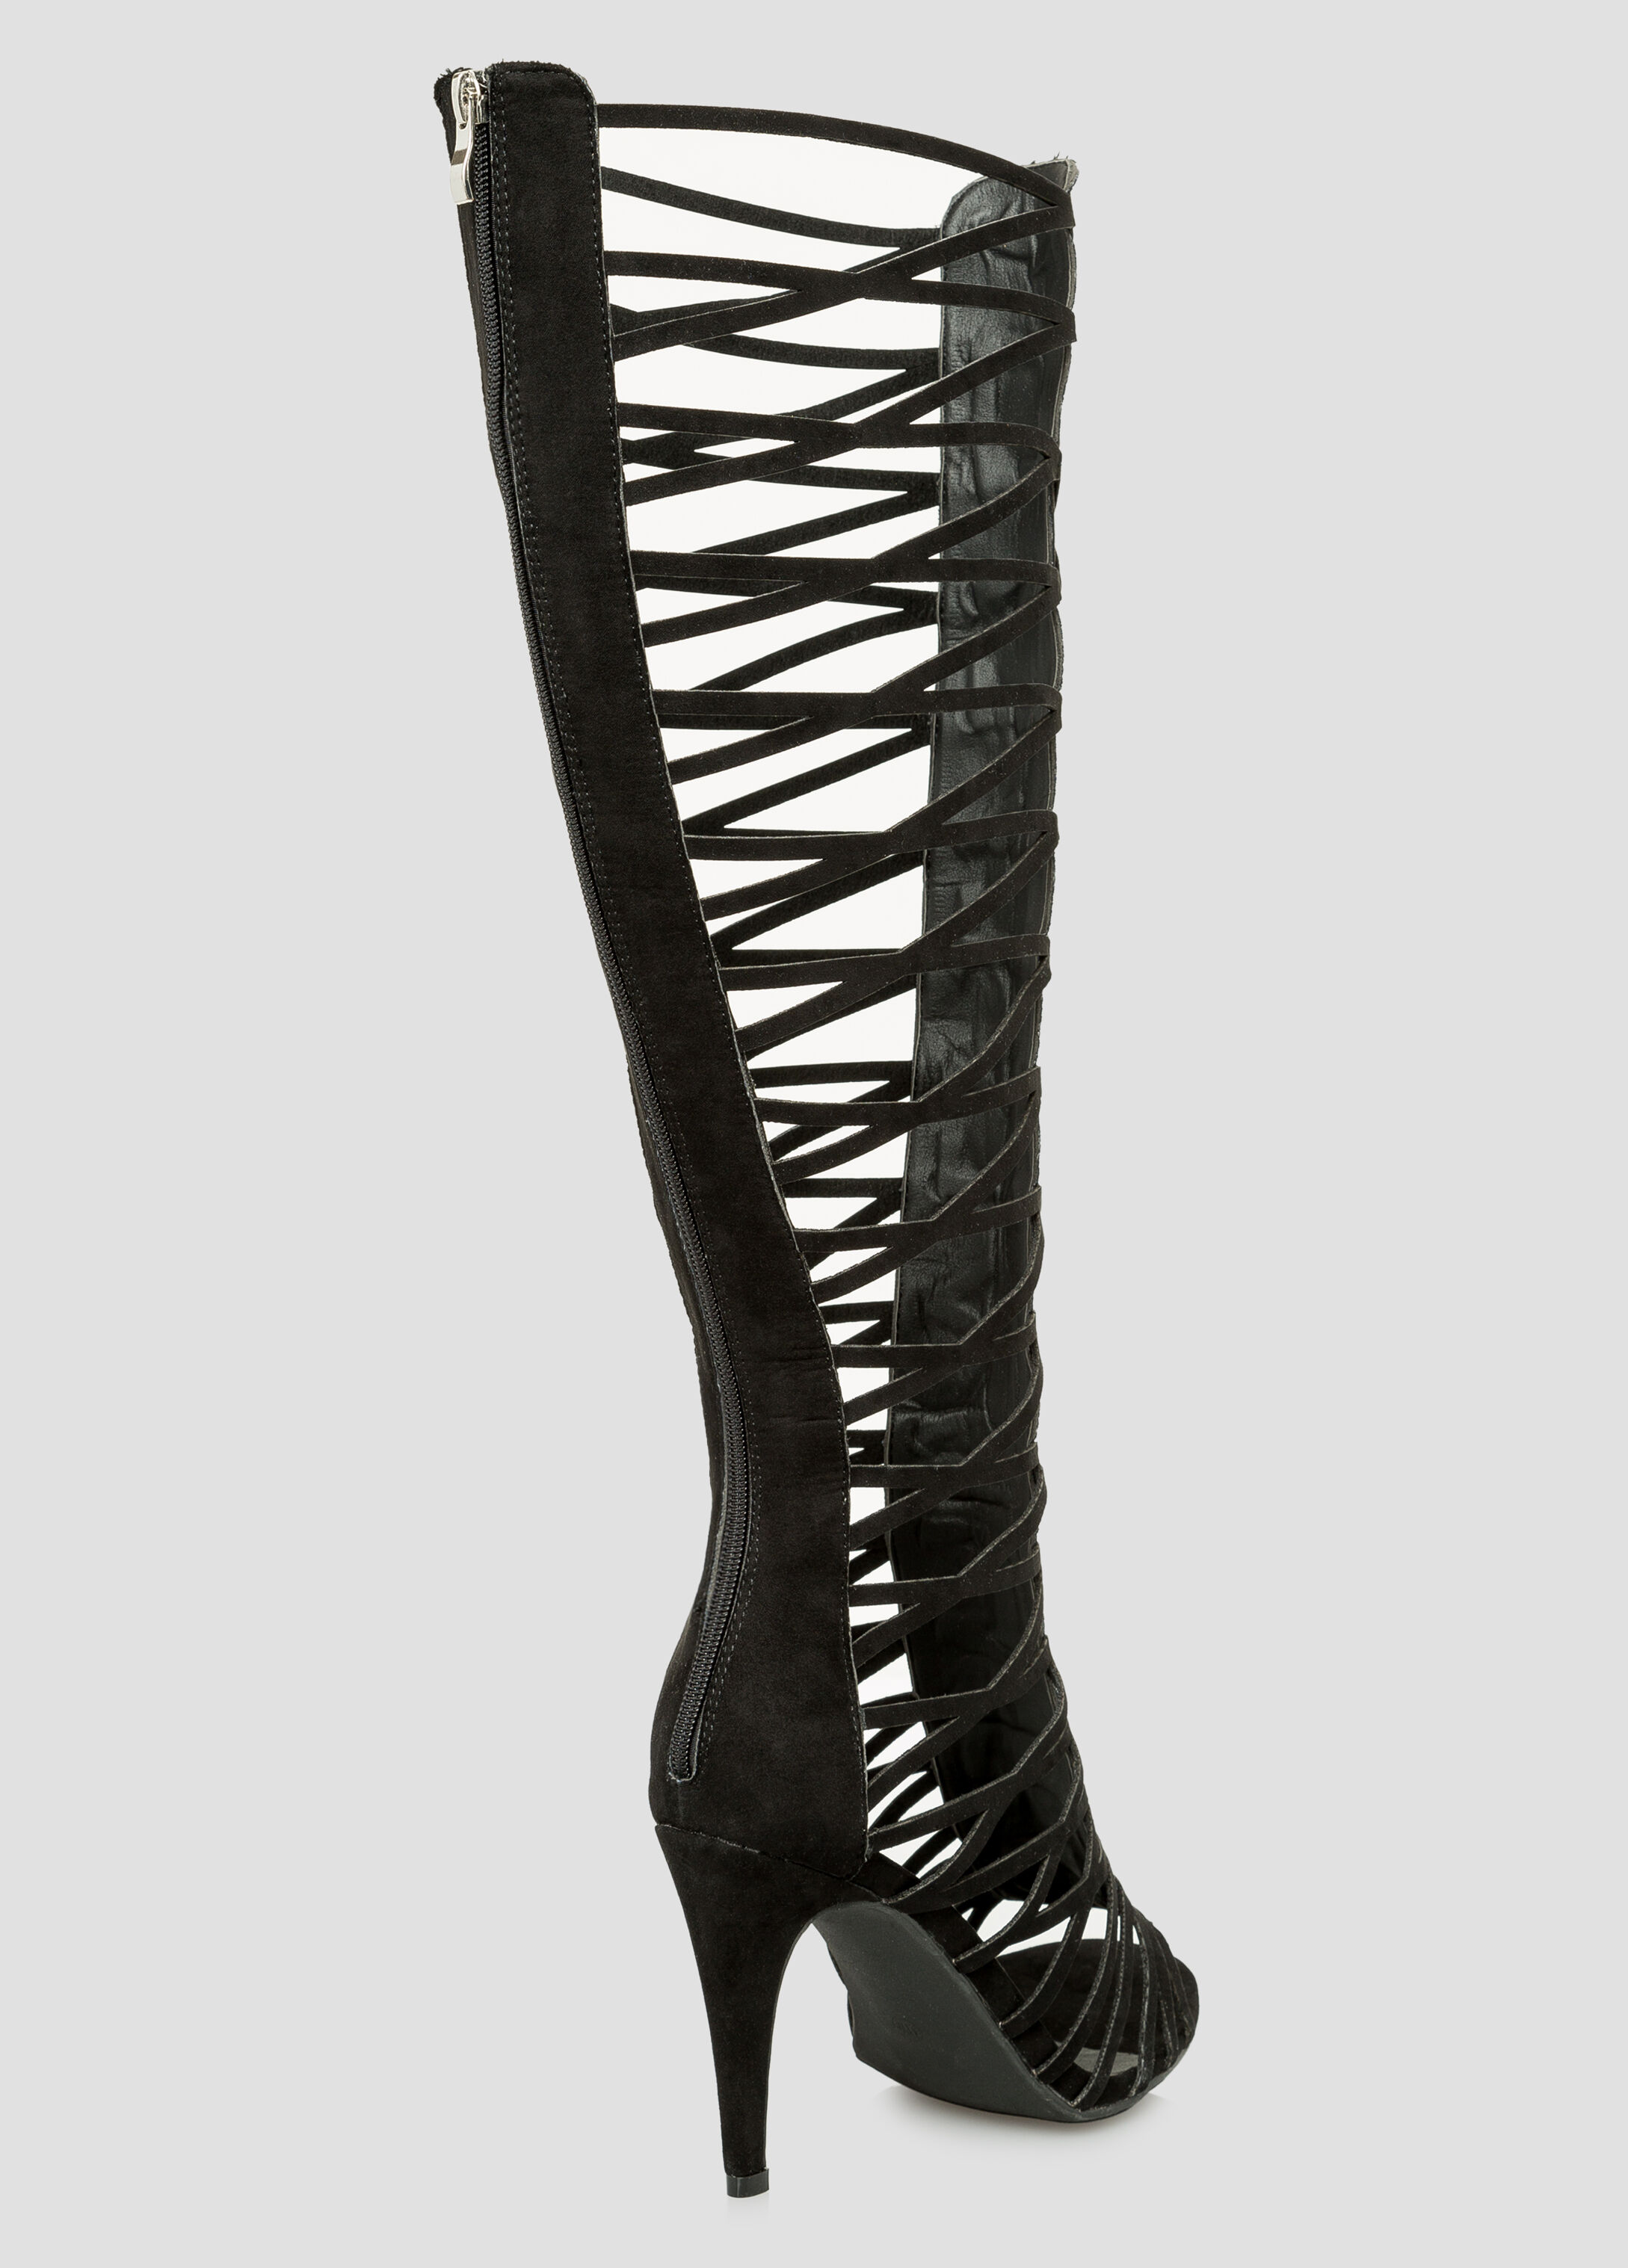 Suede Tall Gladiator Sandal - Wide Width Wide Calf